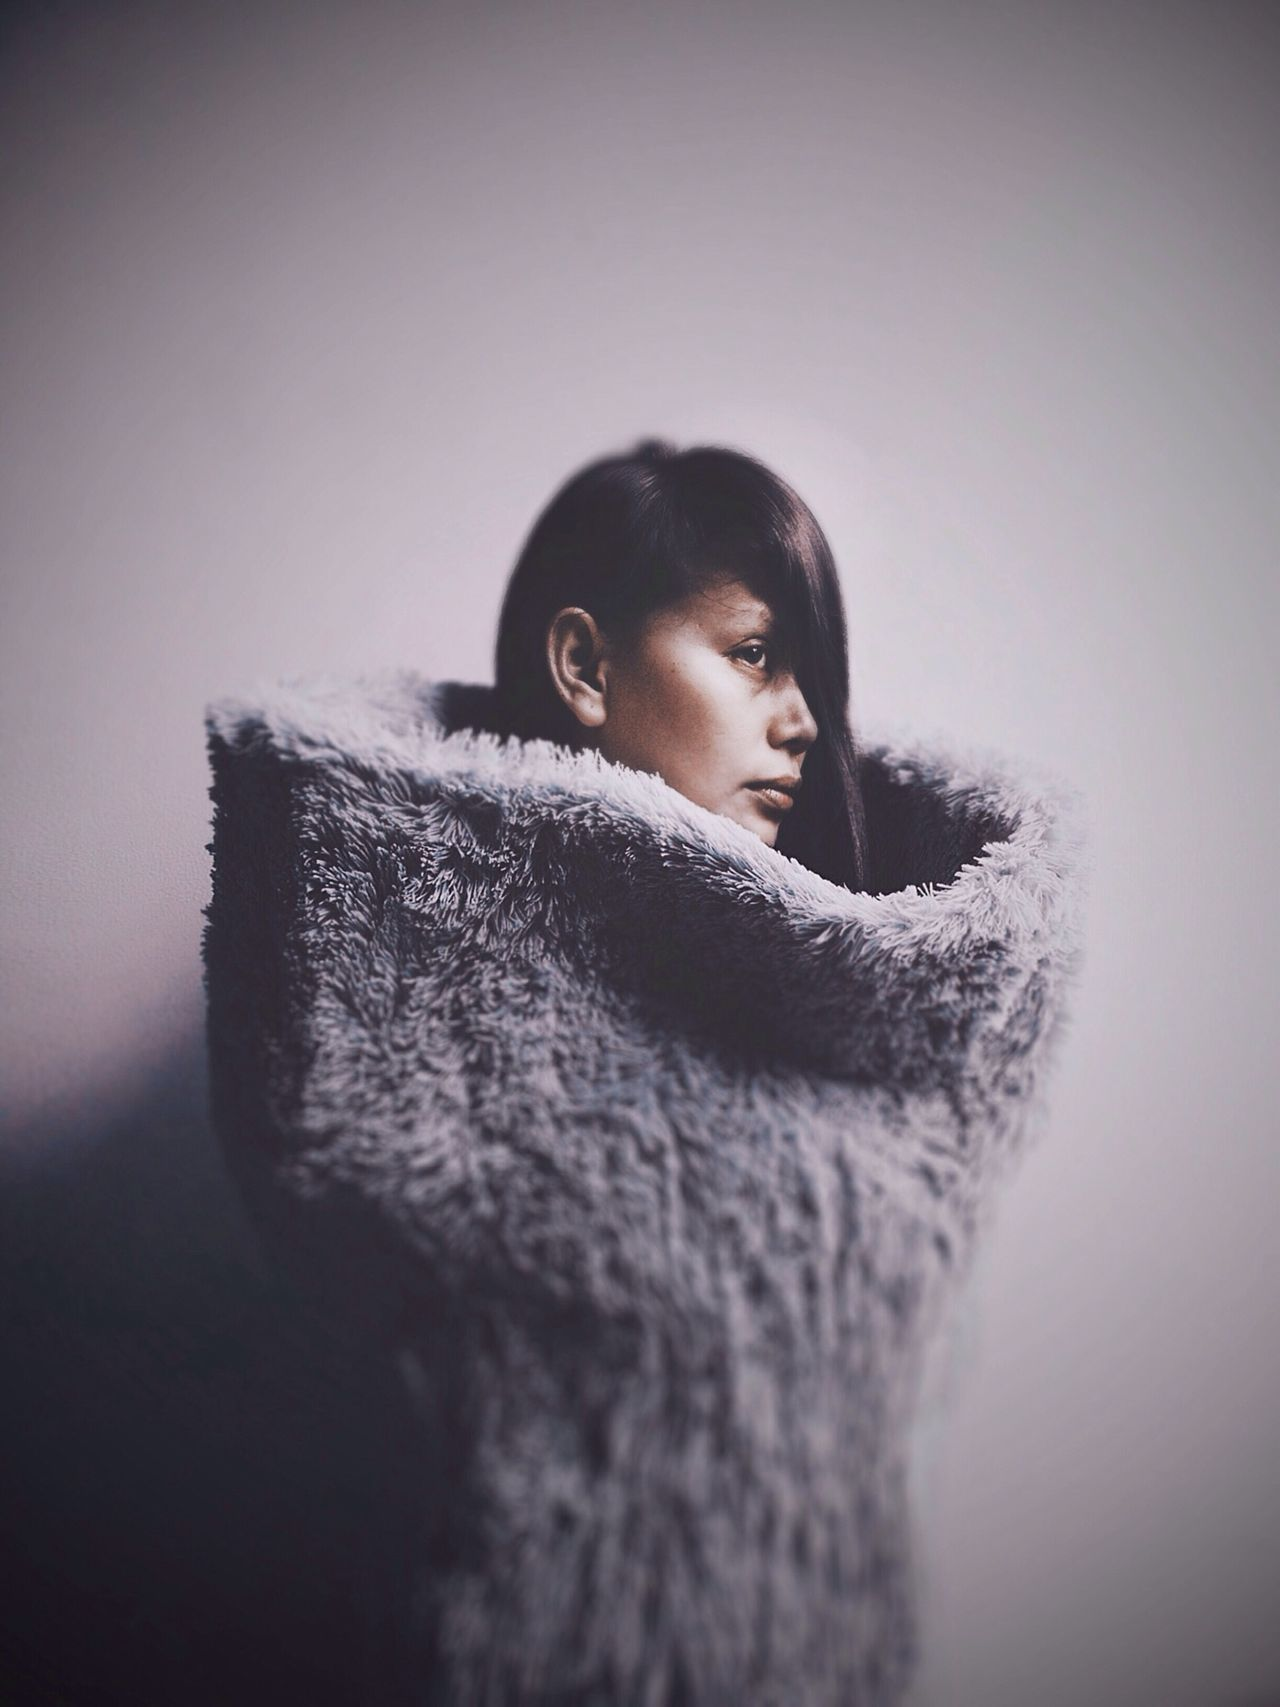 Fur Shootermag Fashion Portrait WeAreJuxt.com Taking Photos AMPt_community